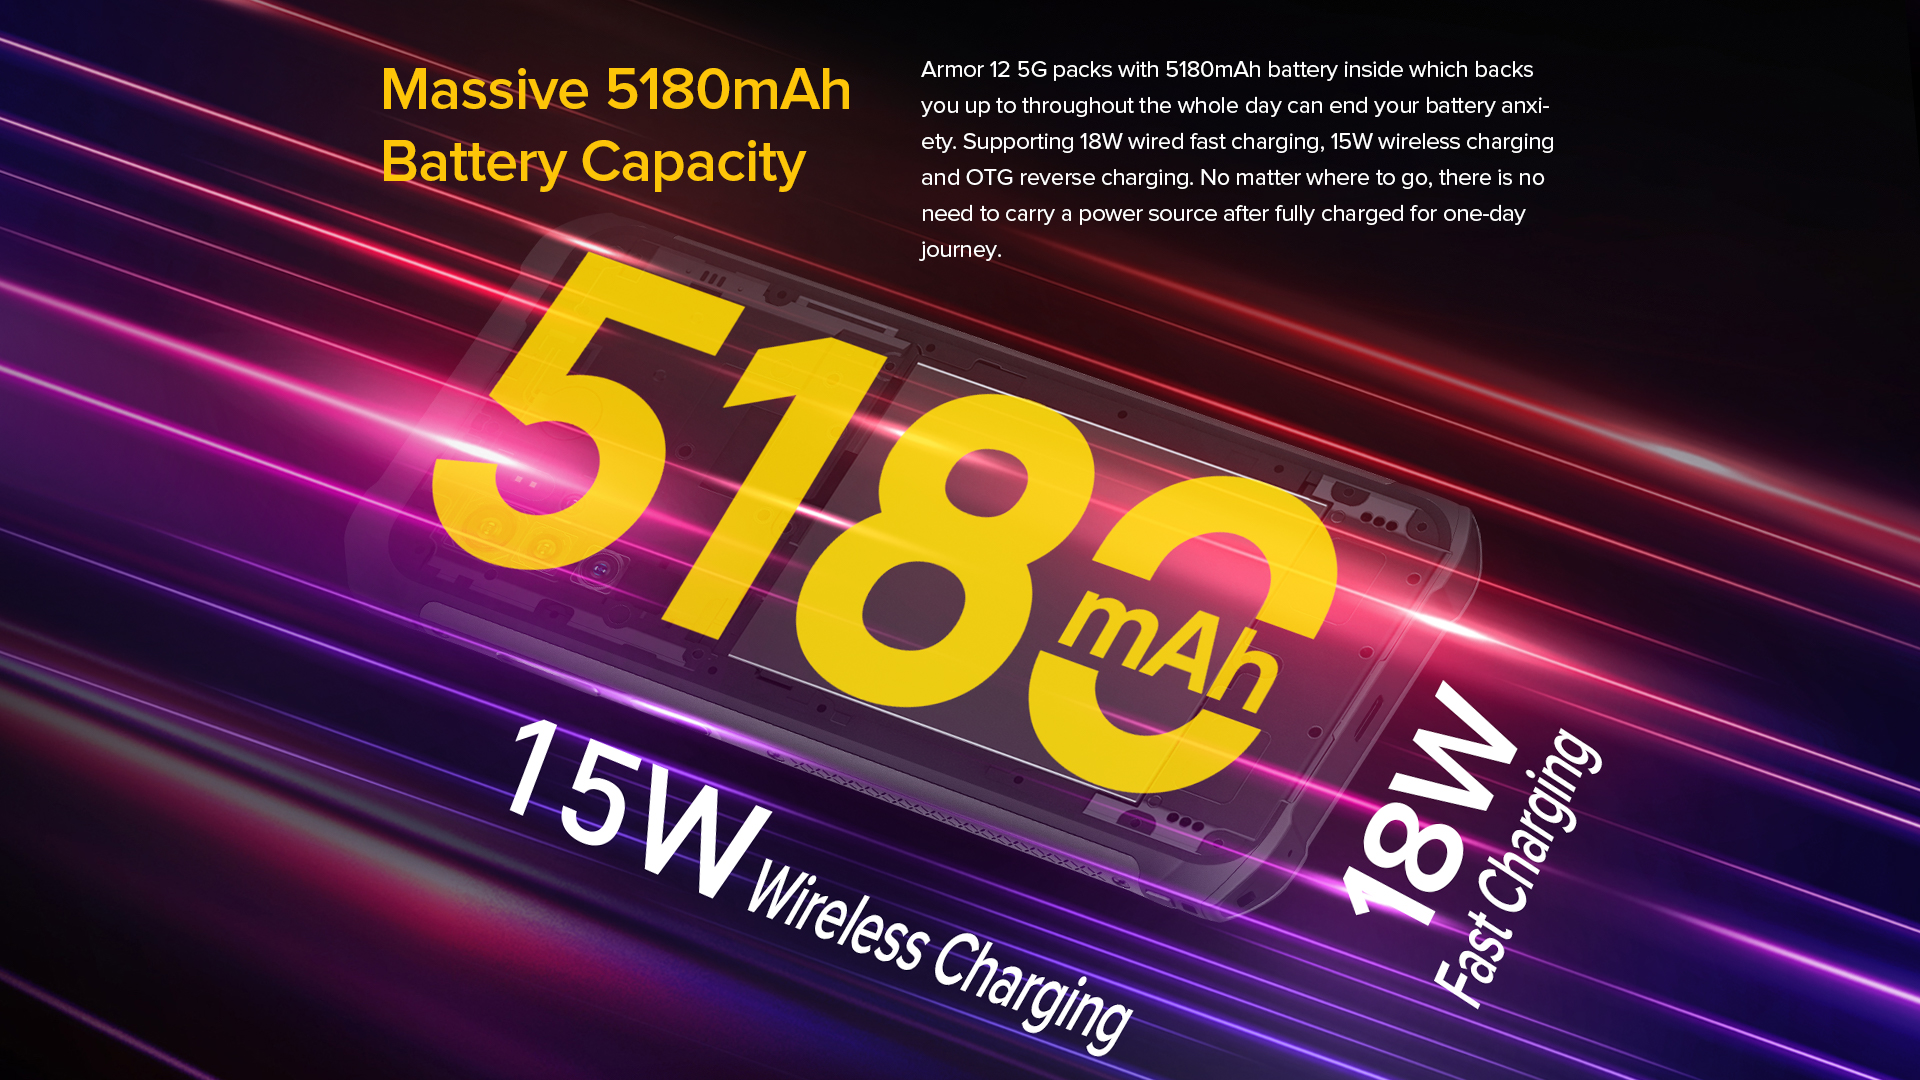 extra large cell phone battery capacity